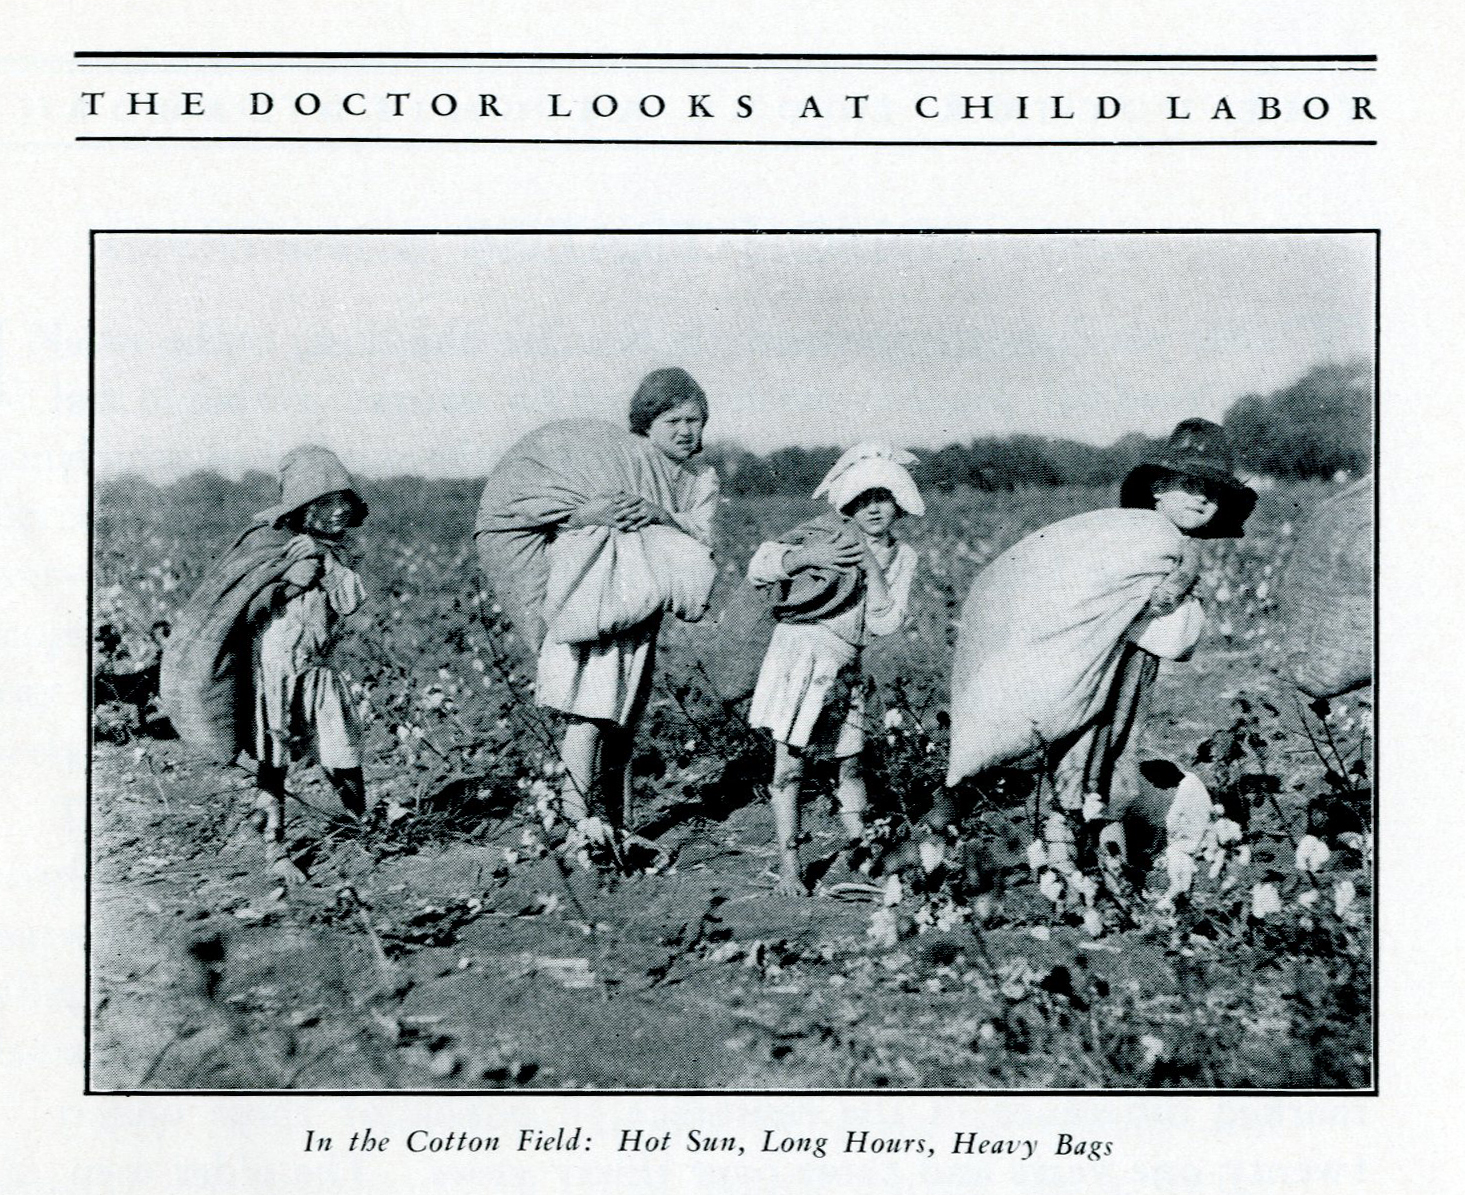 UPSEM_Doctor Looks at Child Labor_p11 detail 048 rsz.jpg